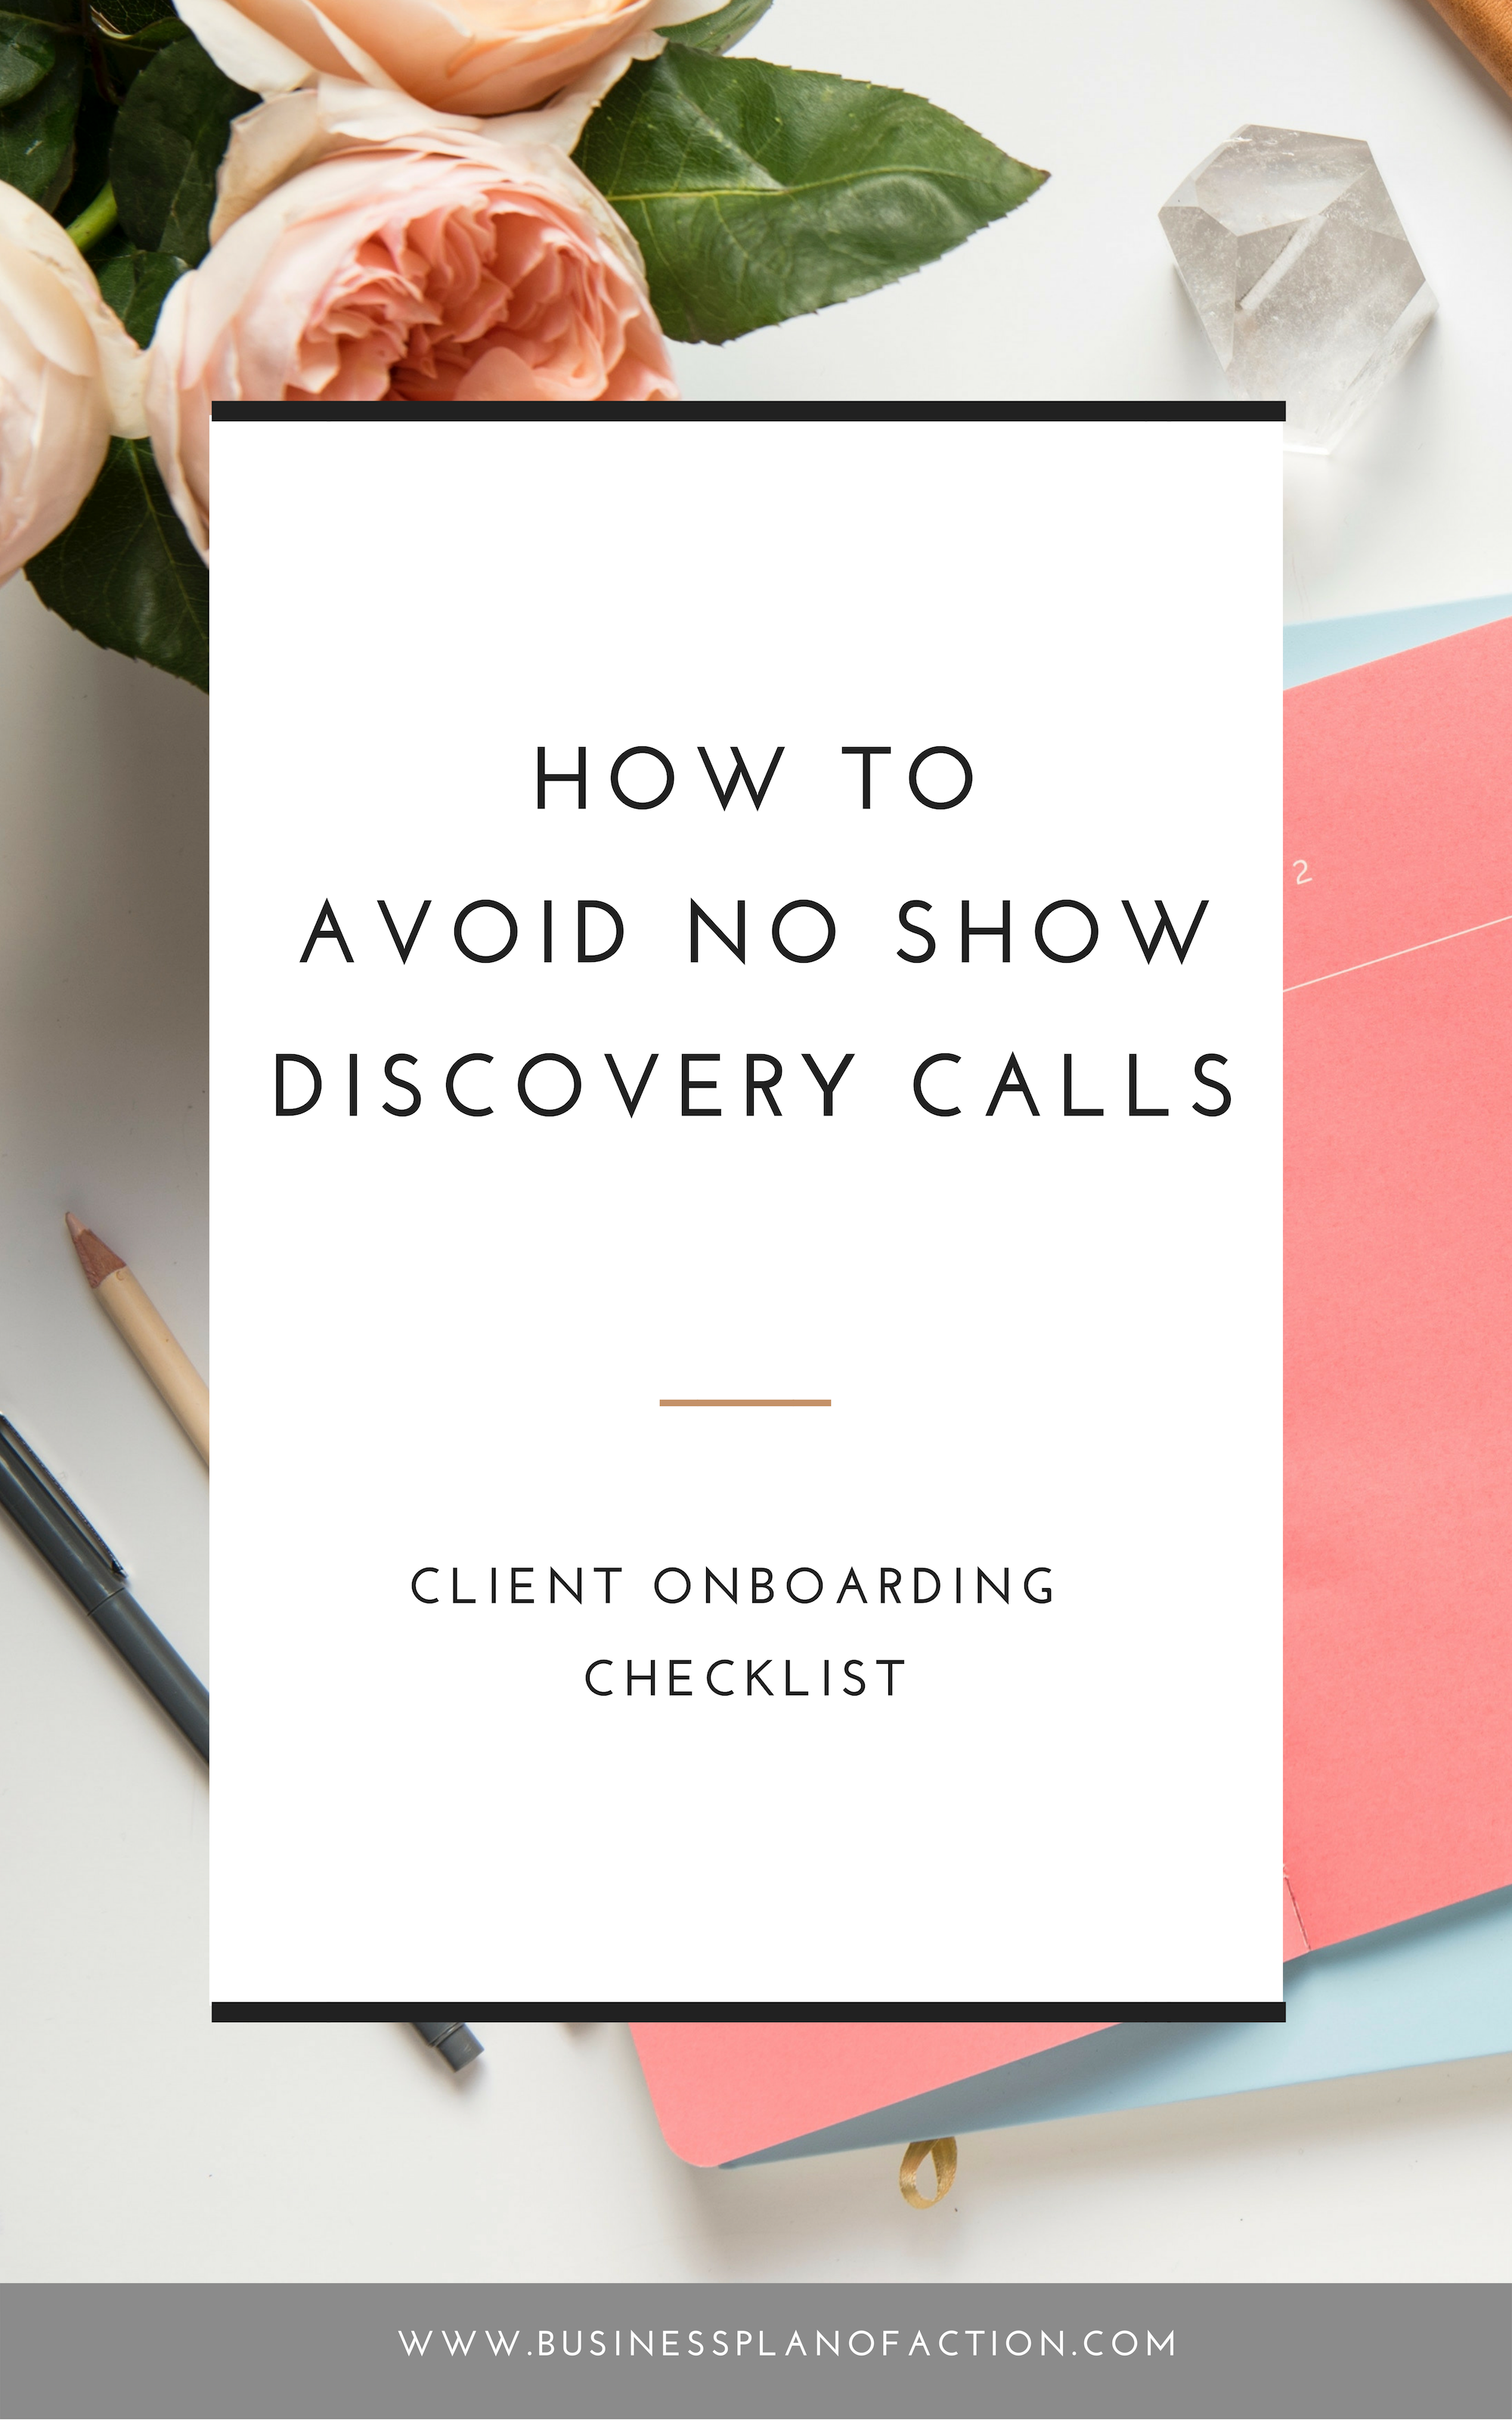 HOW TO AVOID NO SHOW DISCOVERY CALLS.png